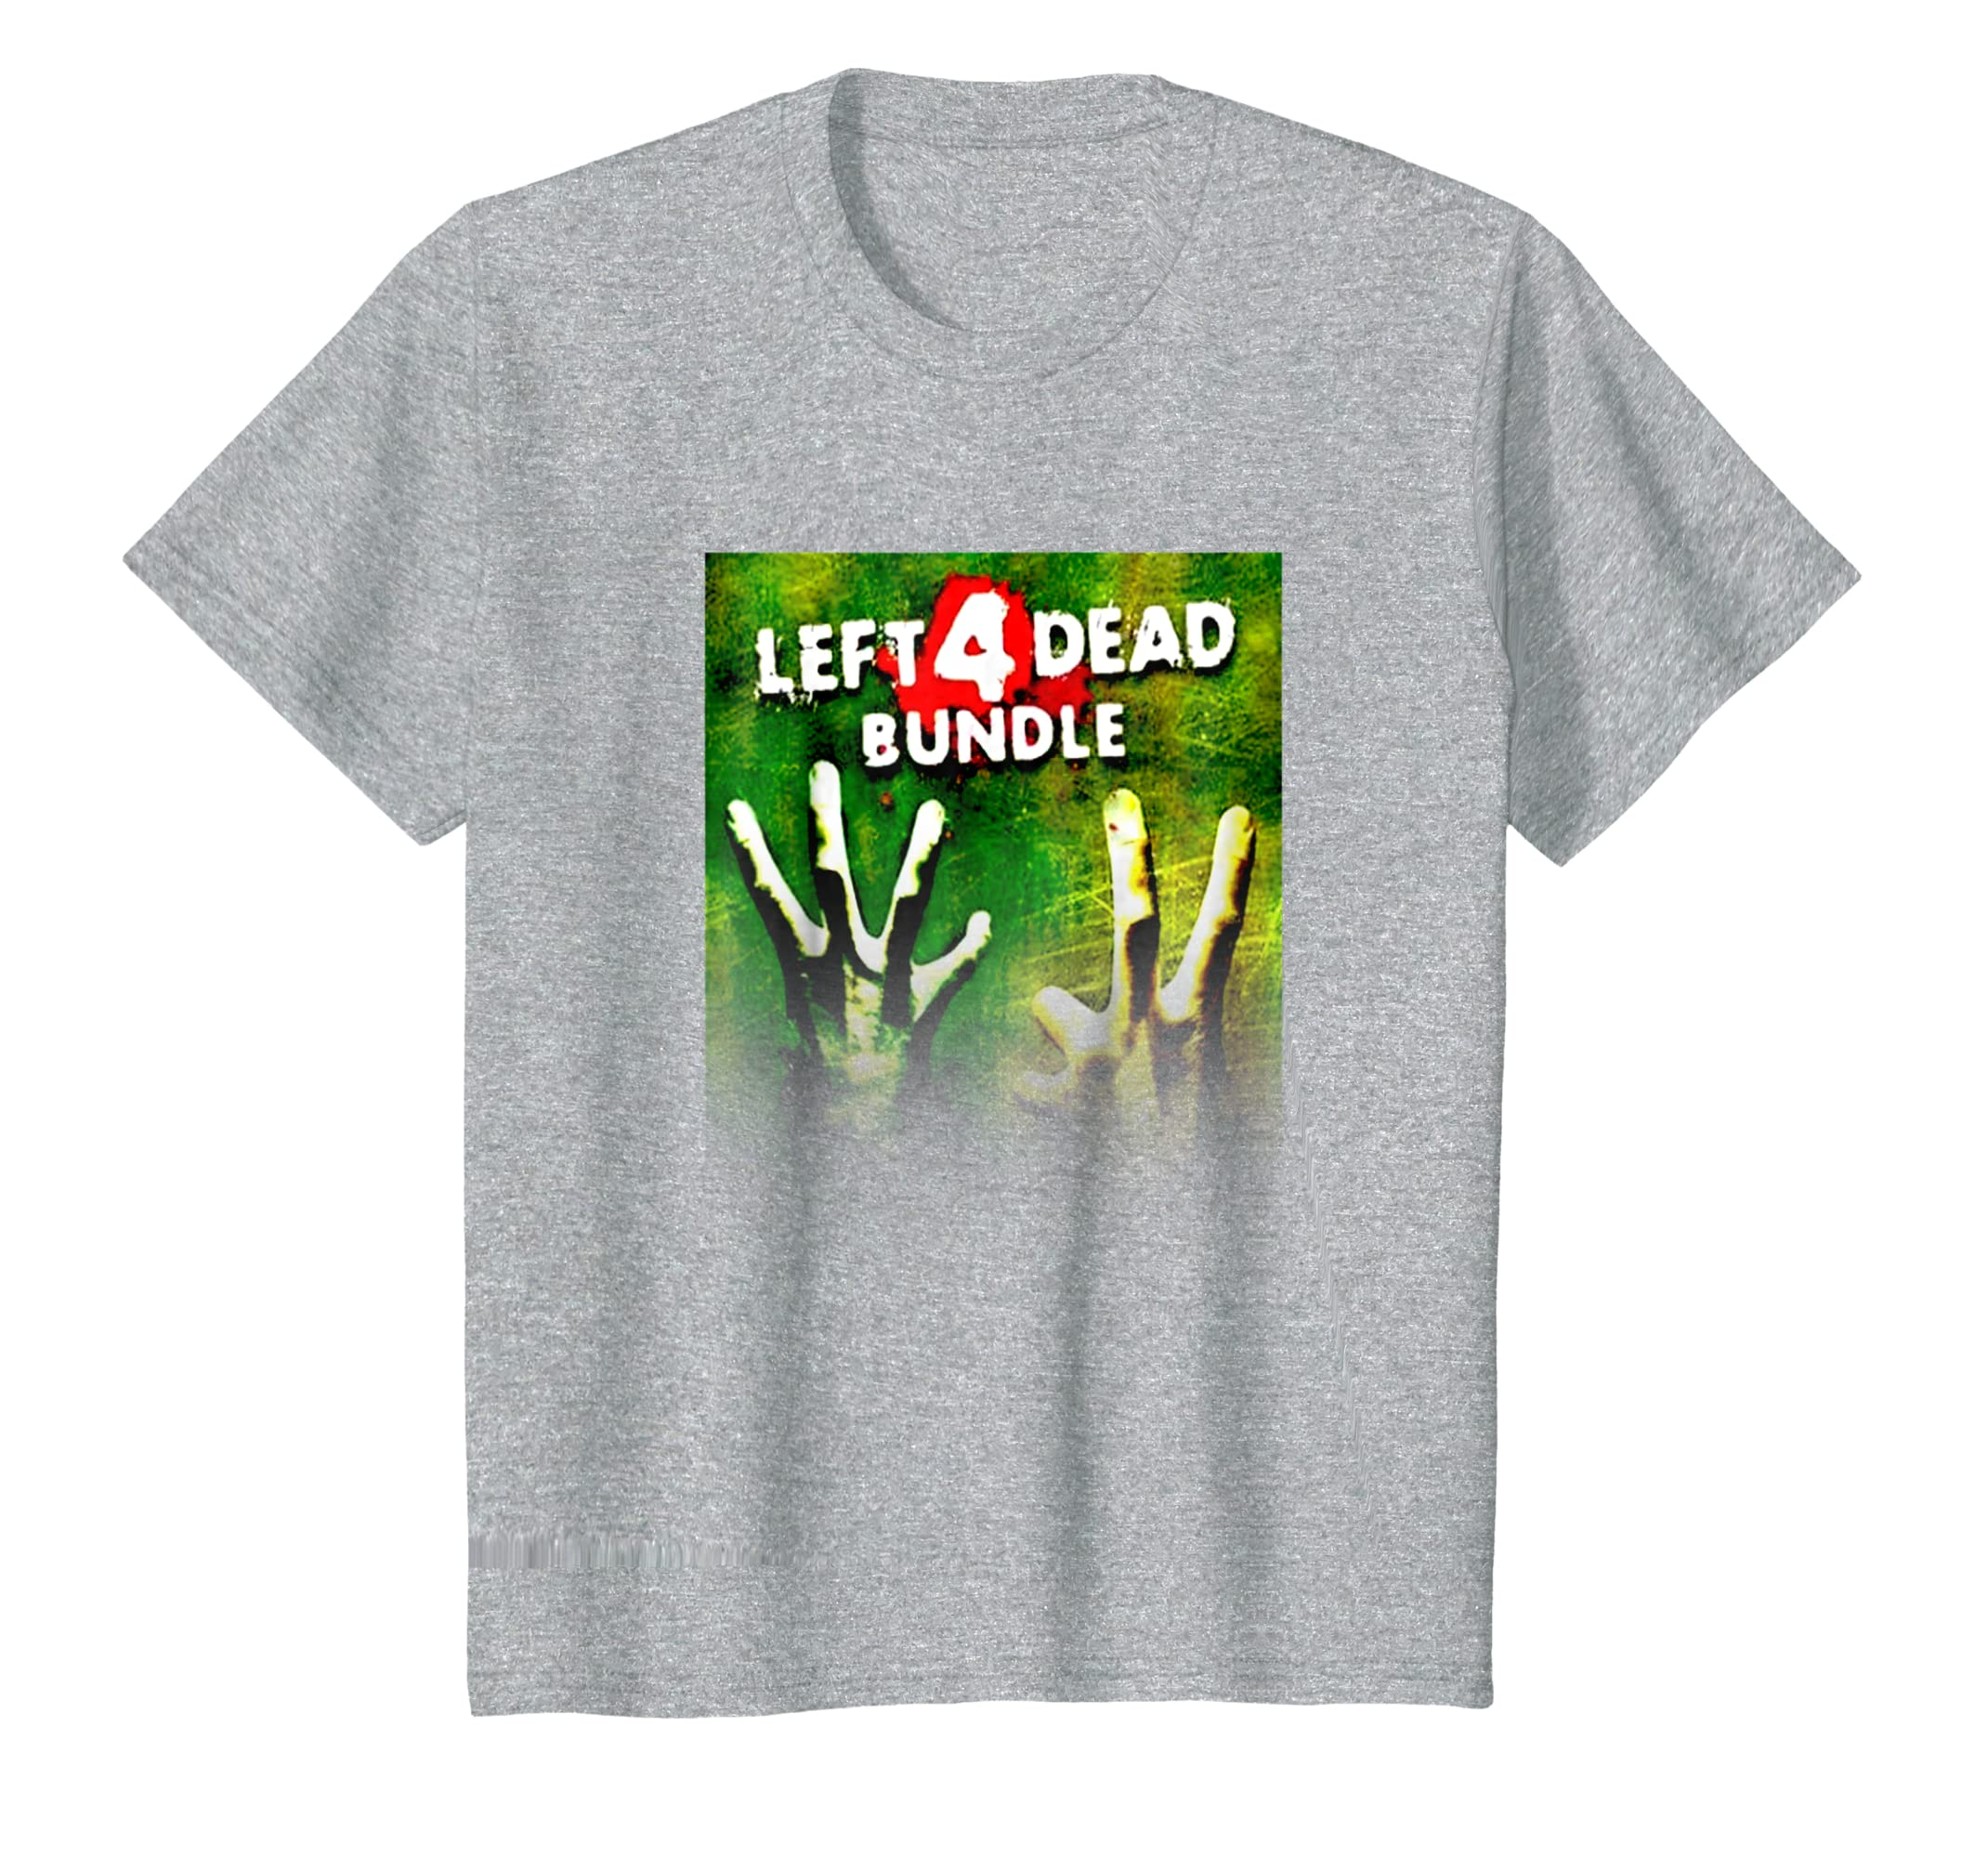 Amazon com: For Fans Left 4 T-shirt Dead Cool gamers Bundle: Clothing